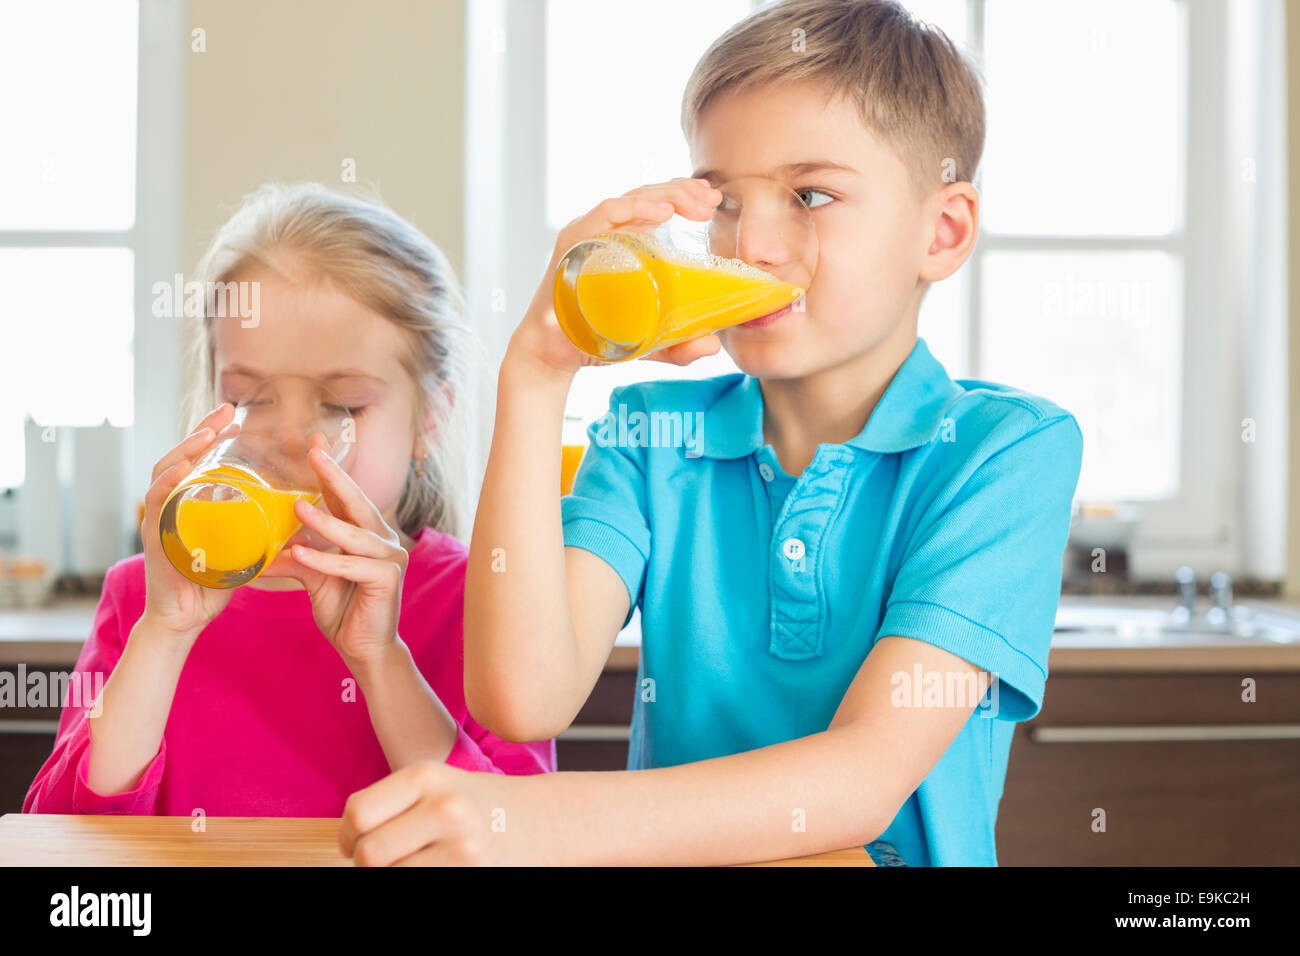 Siblings drinking orange juice in kitchen at home - Stock Image